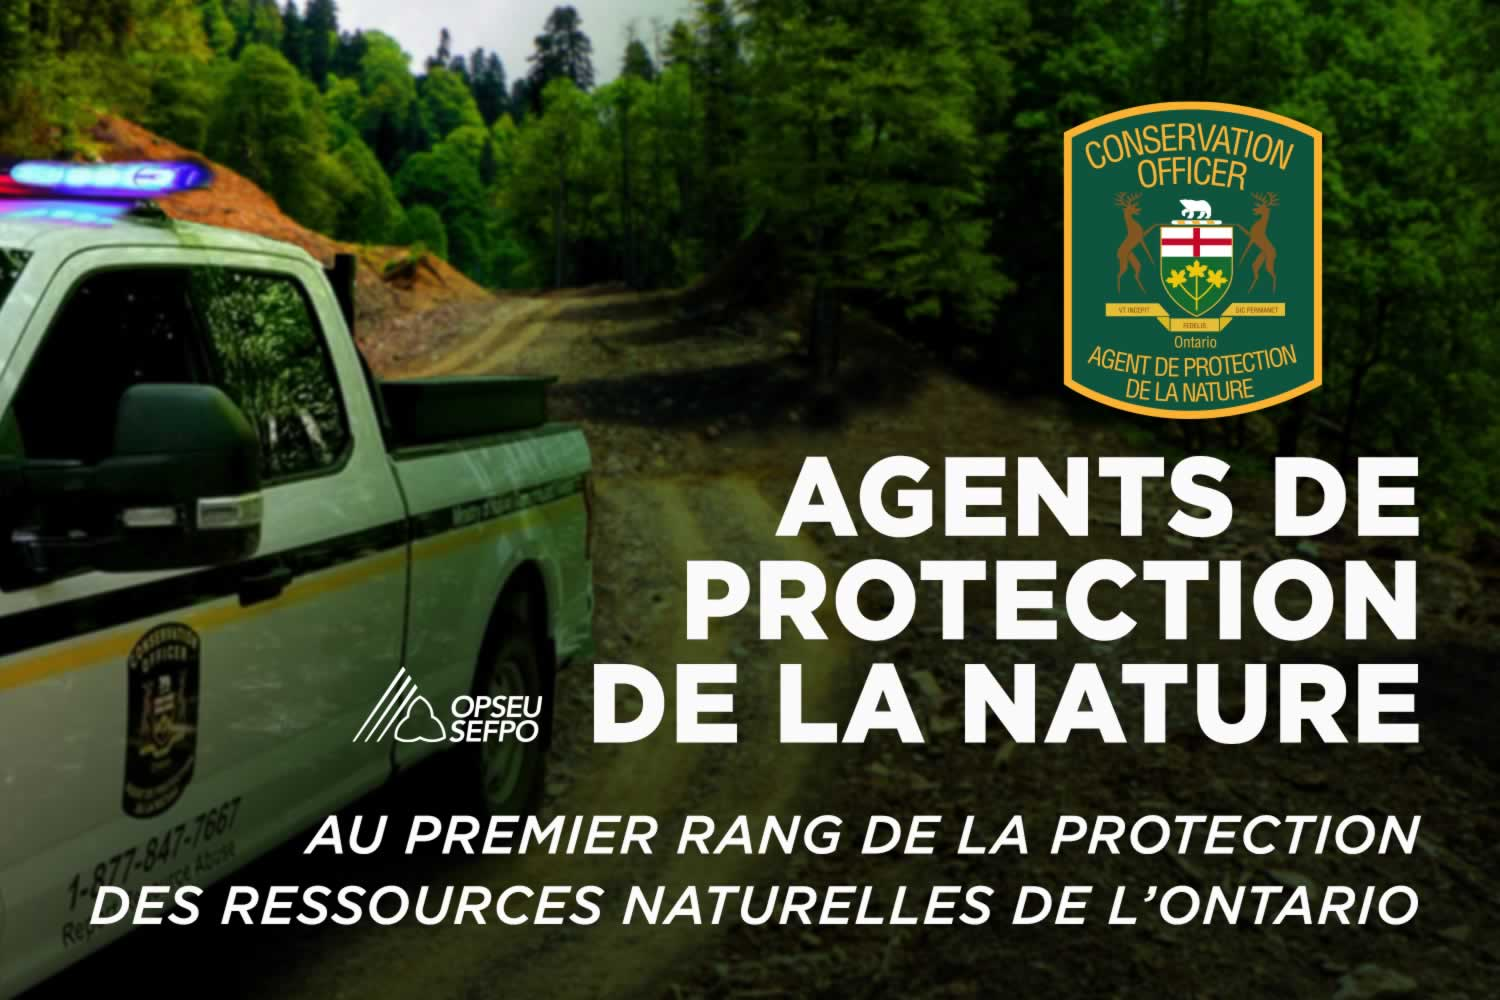 Agents de protection de la nature : Au premier rang de la protection des ressources naturelles de l'Ontario